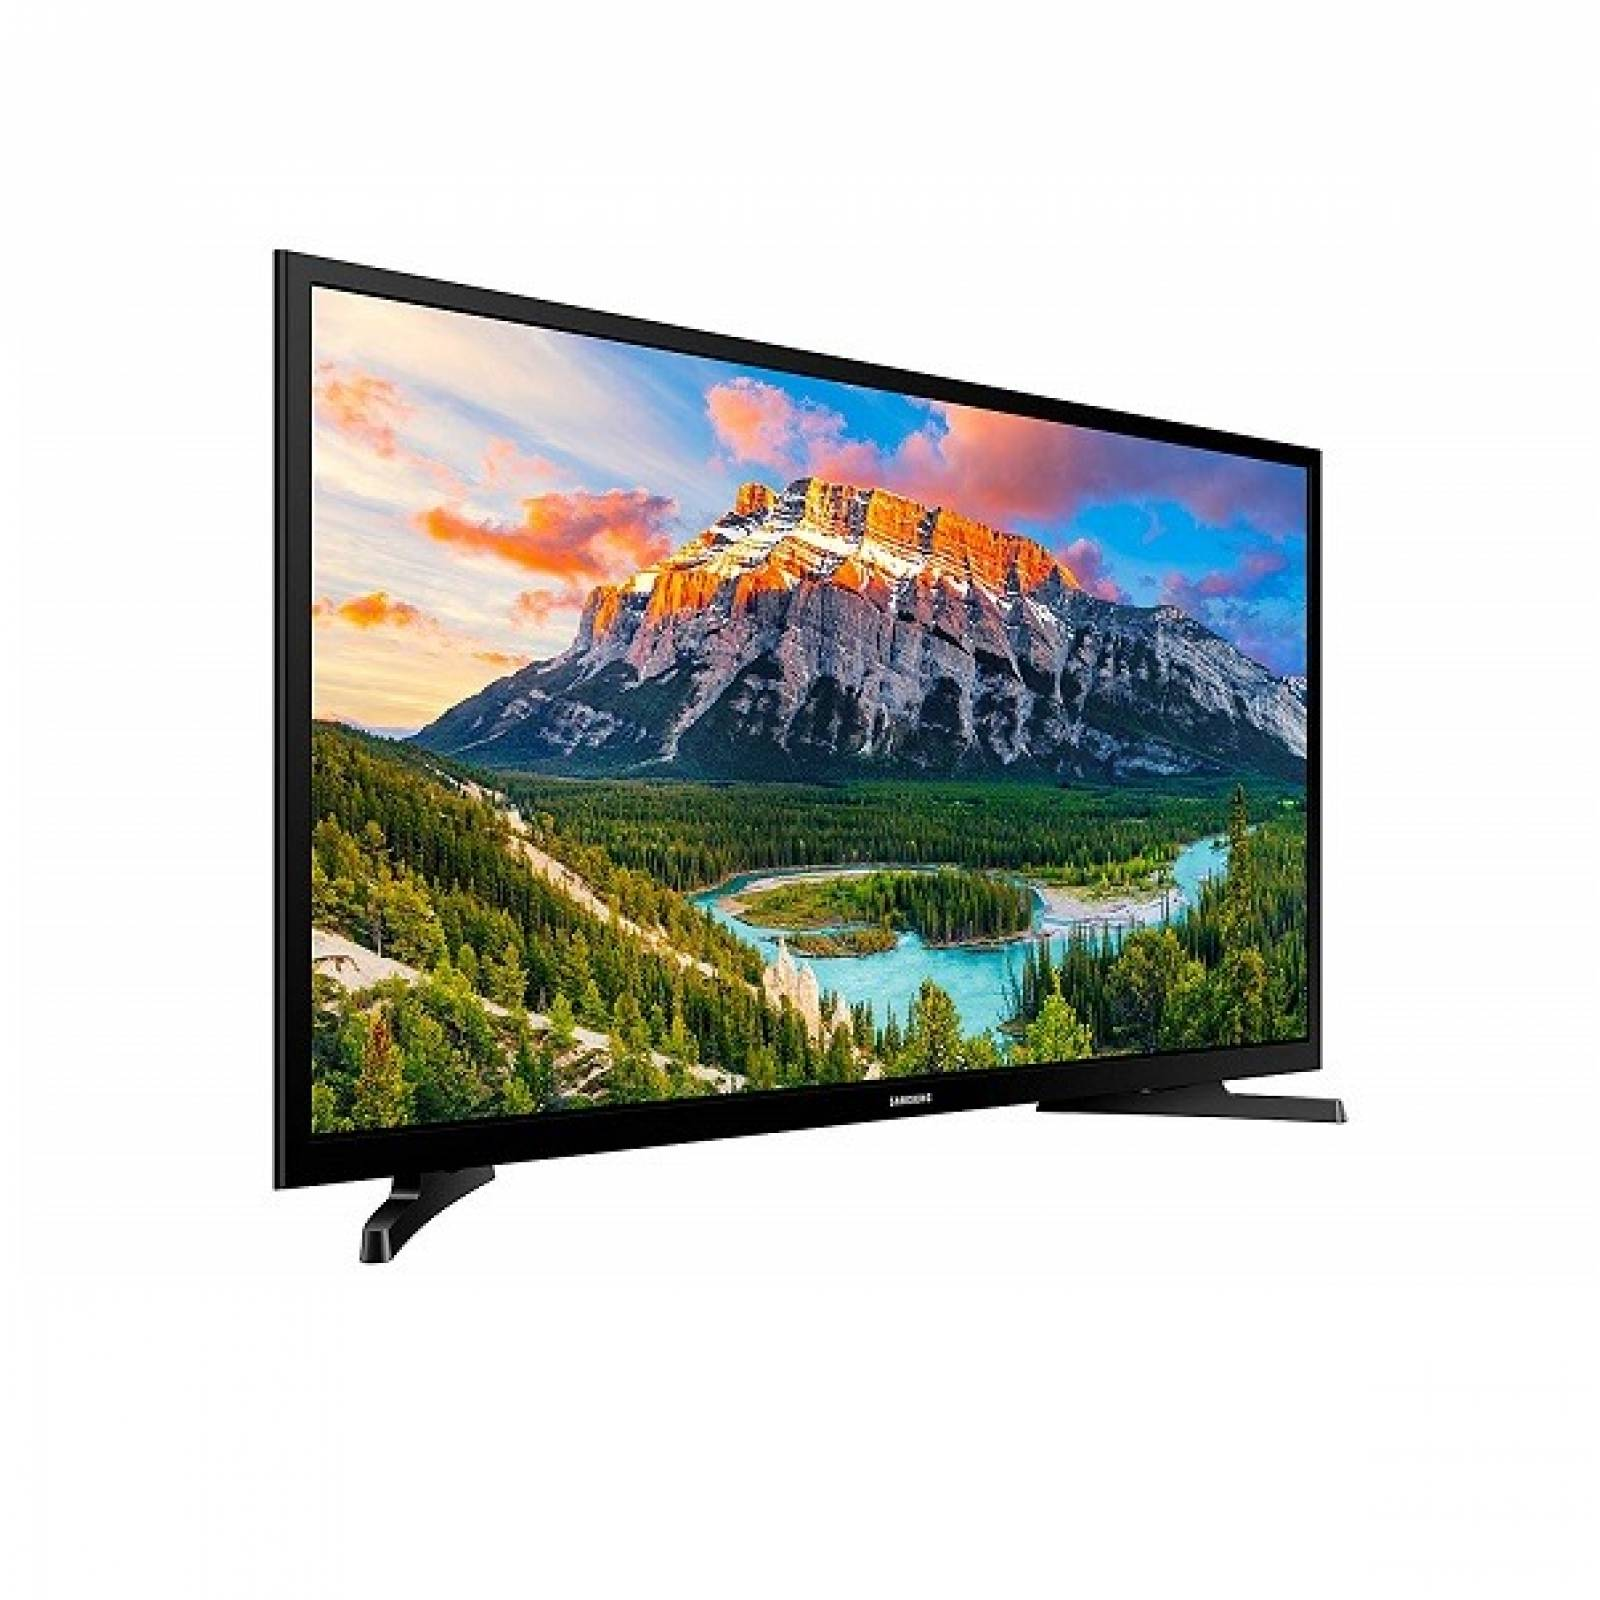 Smart TV Samsung 32 Full HD HDR Wifi UN32N5300AFXZA - Reacondicionado